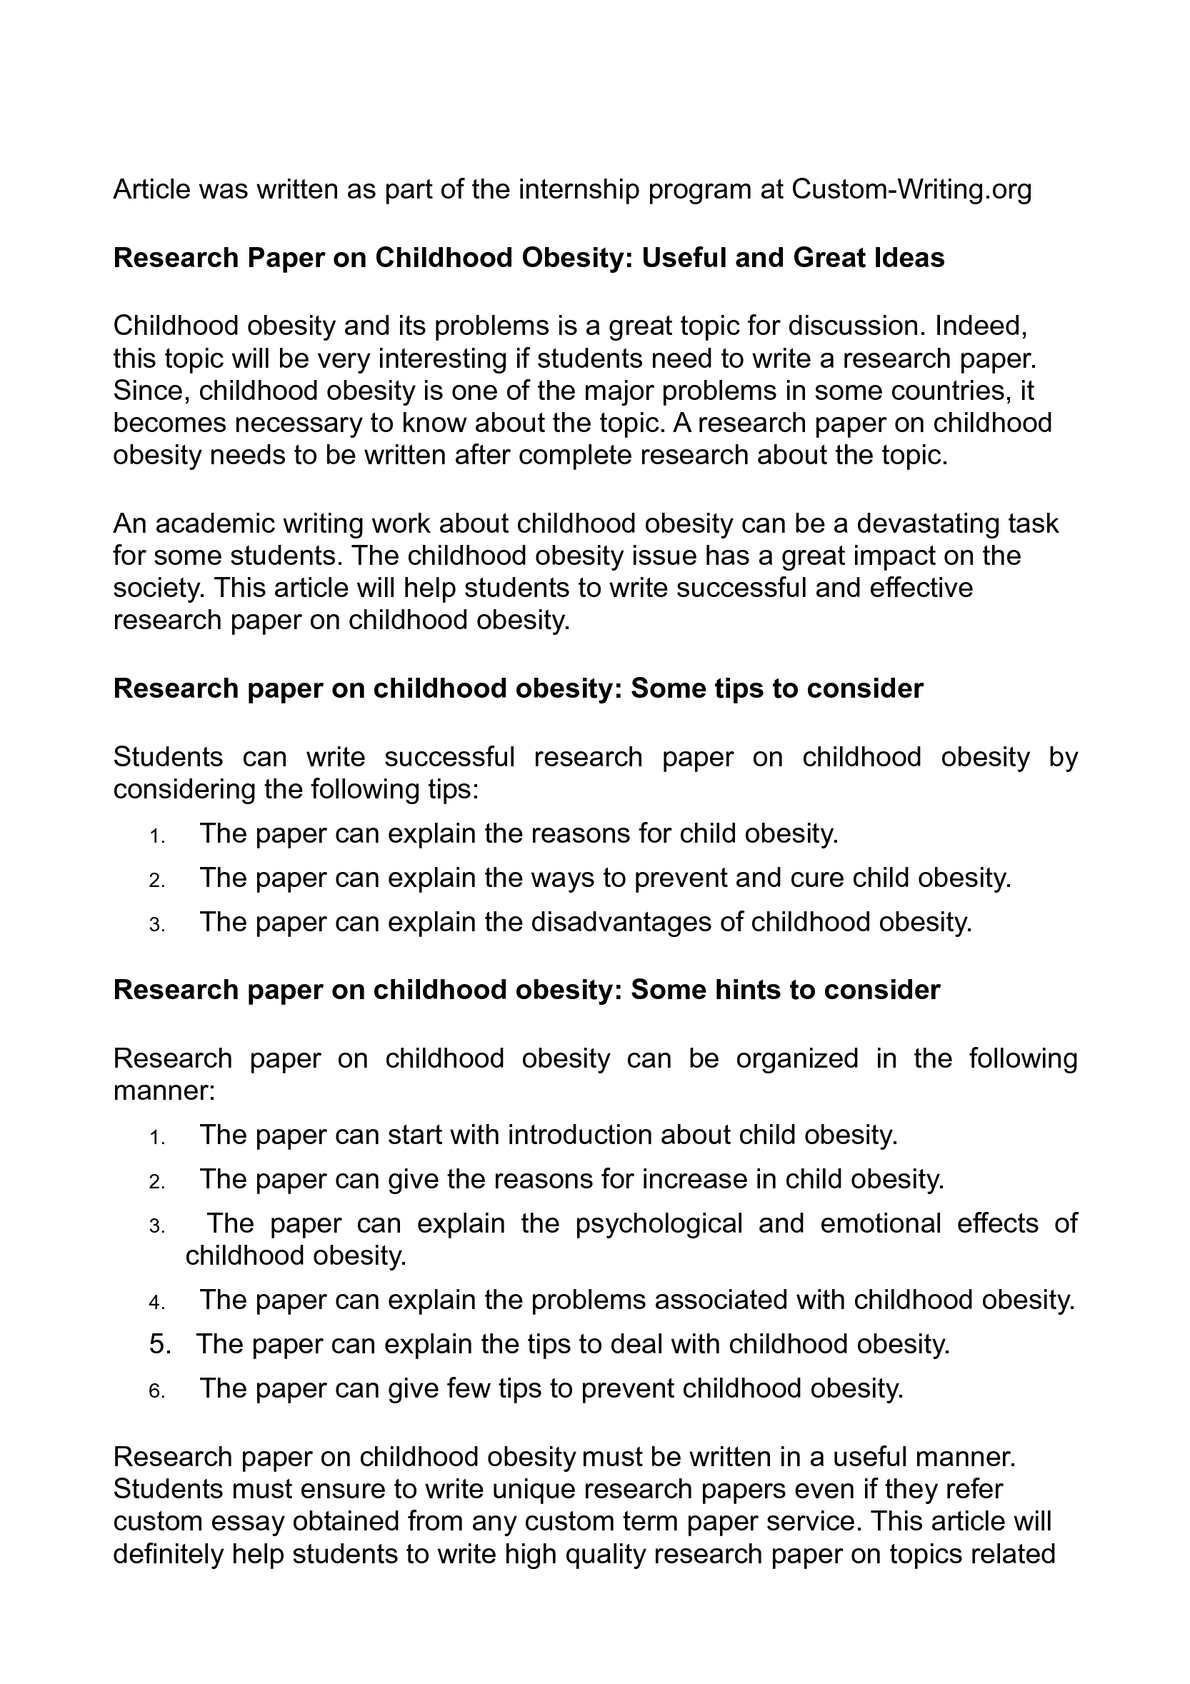 005 Obesity Research Paper Topics Fascinating Childhood Full